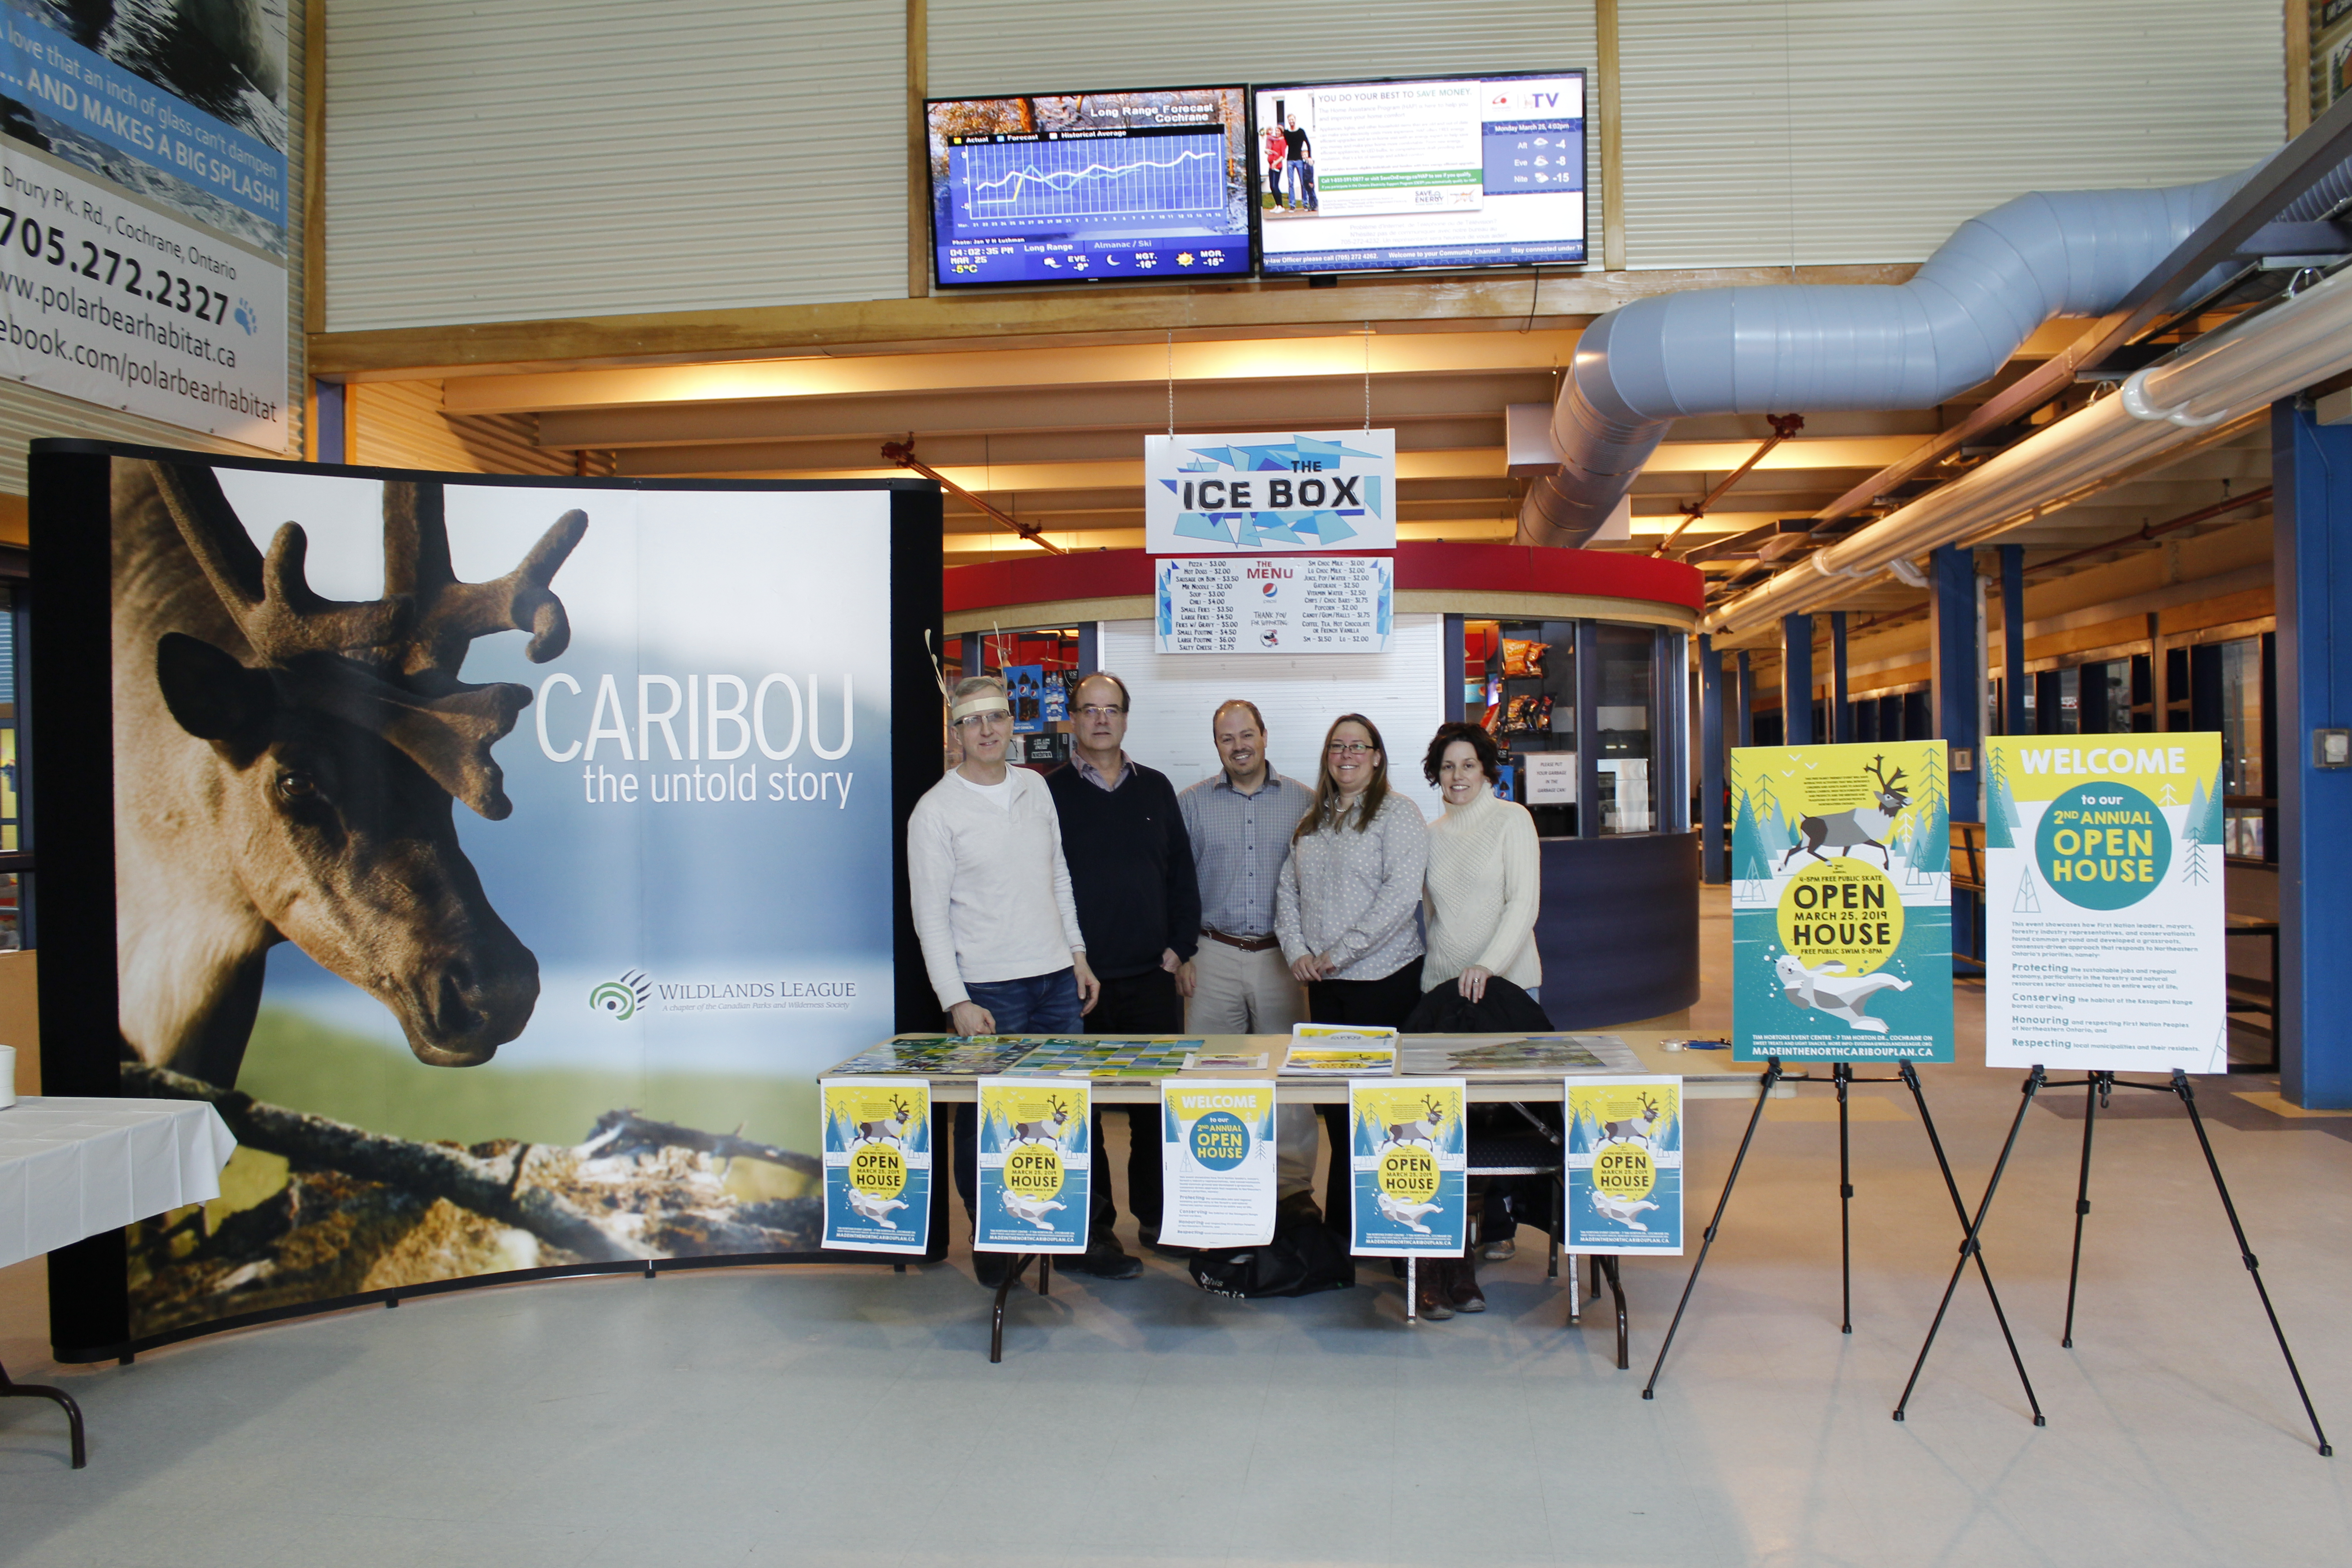 group of people standing next to a large photo of a caribou